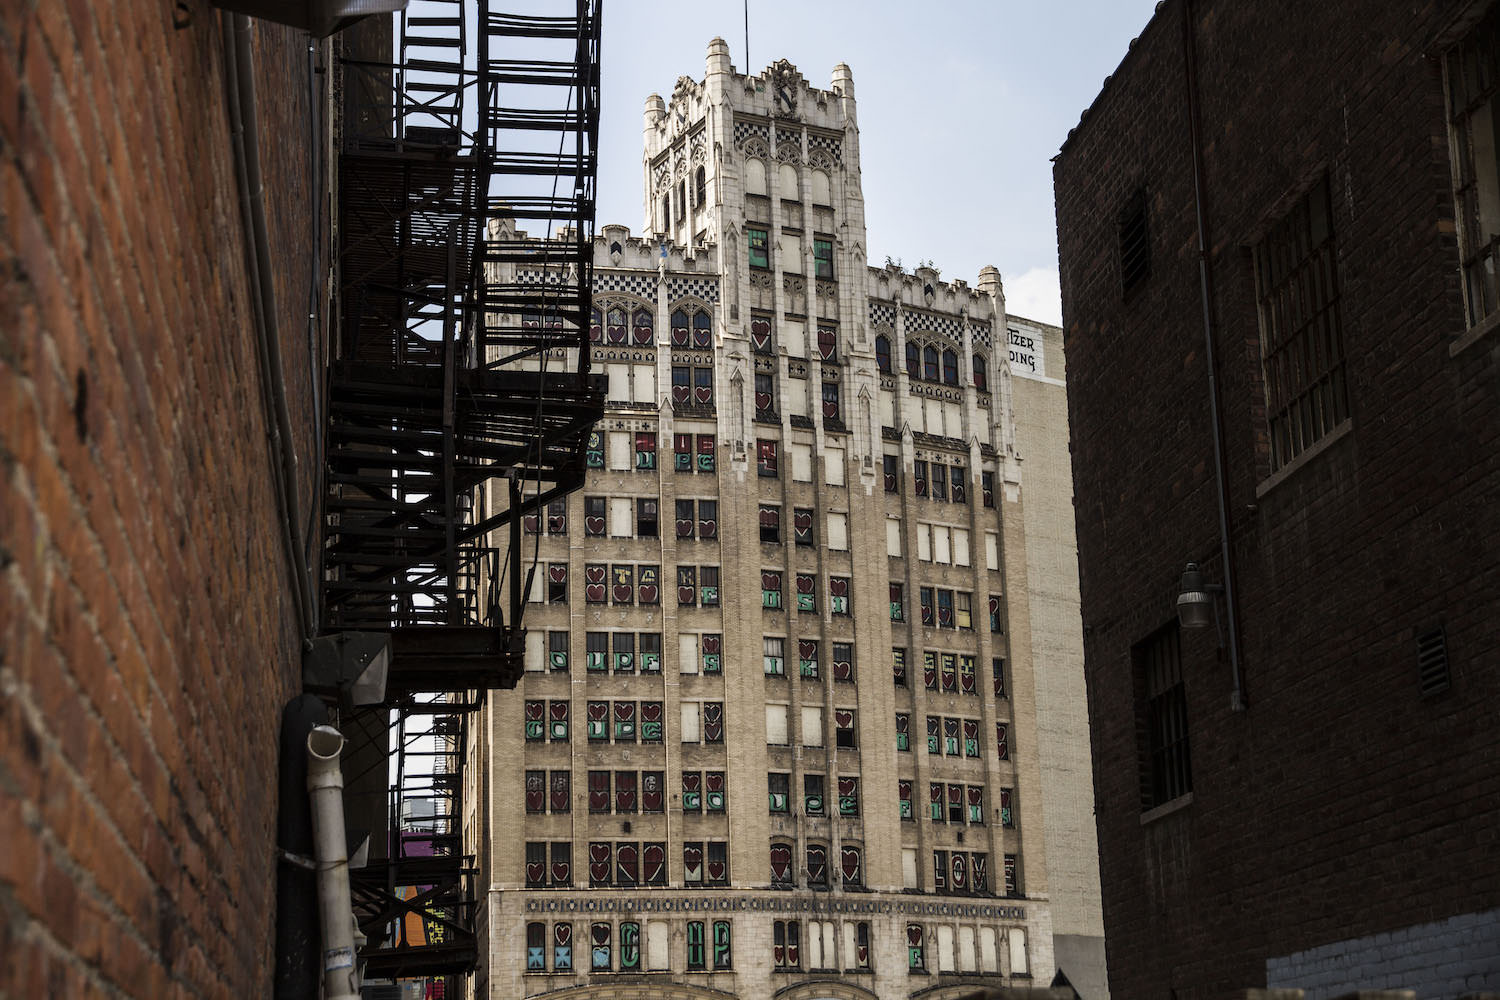 The Metropolitan Building, once a high-rise office building in downtown Detroit closed in 1977.  Since, it is an abandoned piece of art.  The Downtown Development Authority has approved a $32 million makeover to reopen the building as an extended-stay hotel with ground-floor retail.